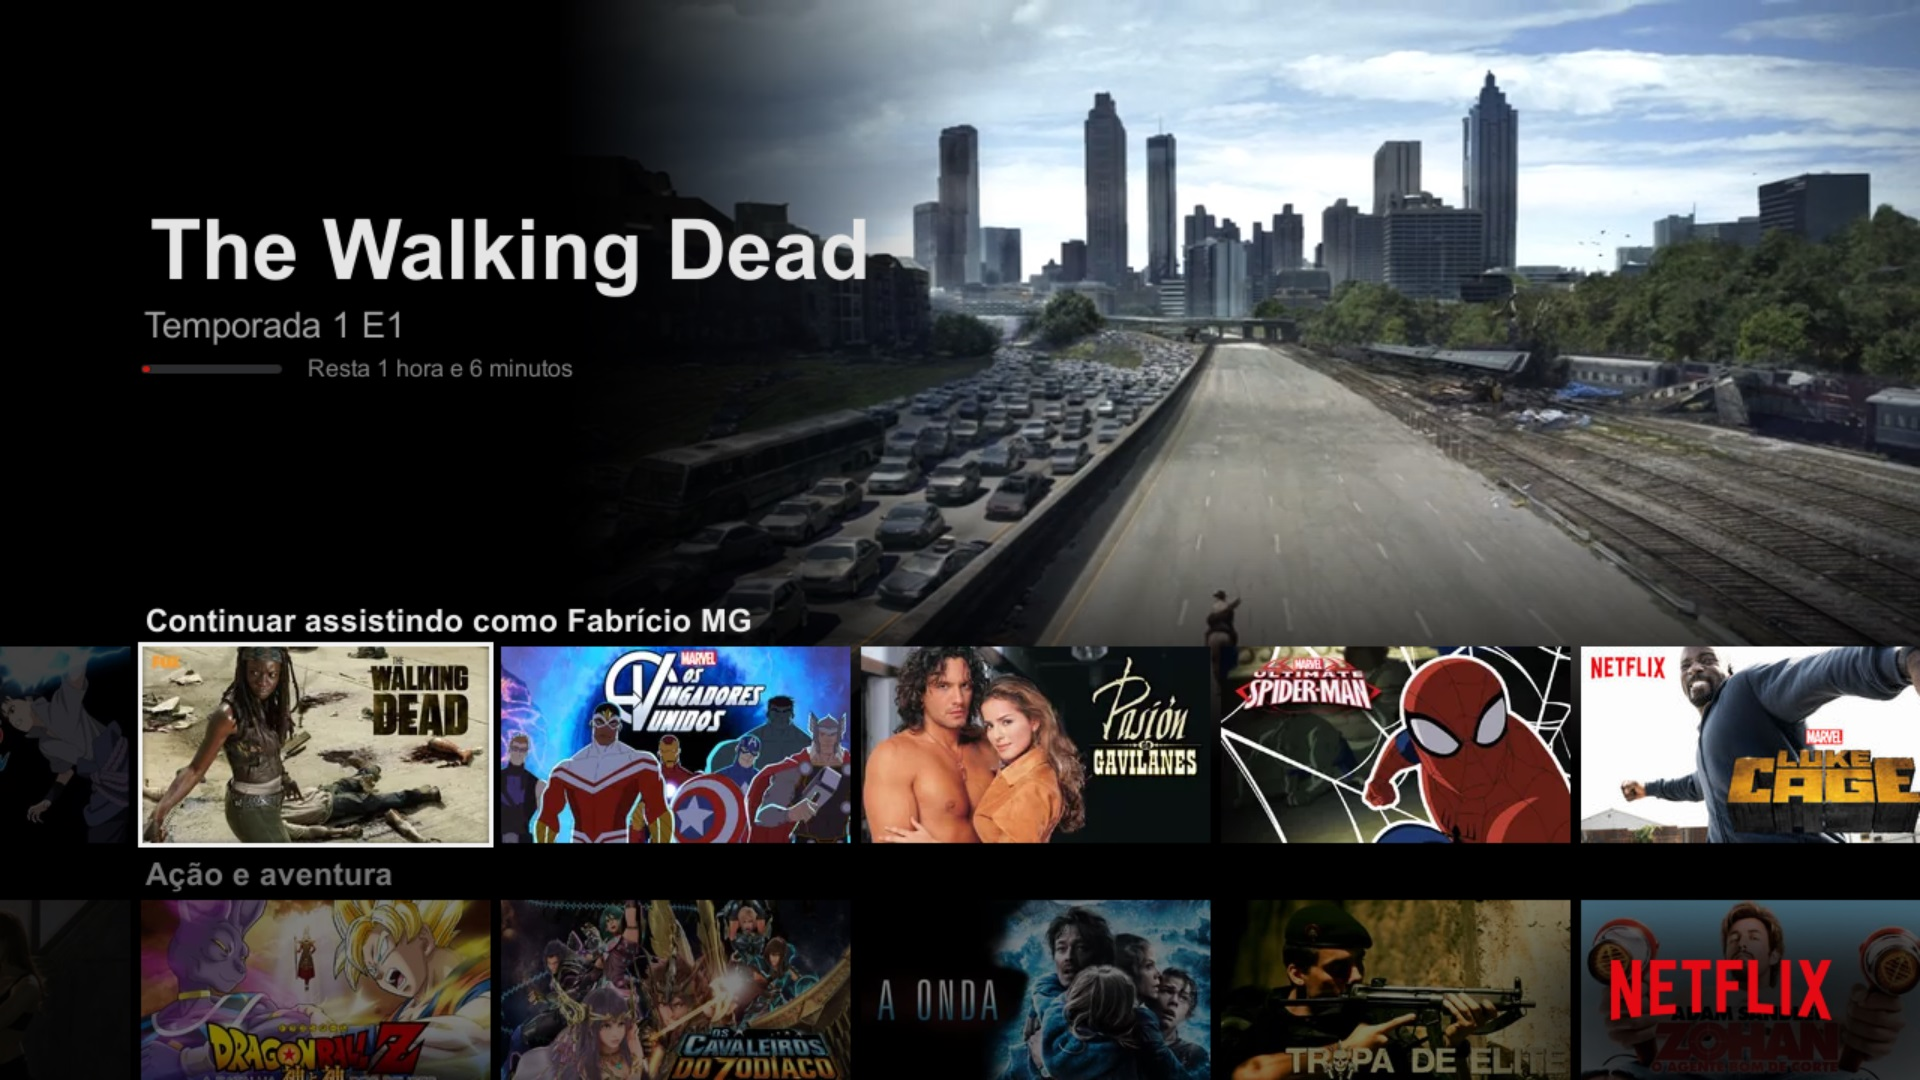 Netflix For Rgh 23 06 2017 Update 15 10 17 Homebrew Xbox360 Slim Reset Glitch Hack Modification Service Pictures To 3